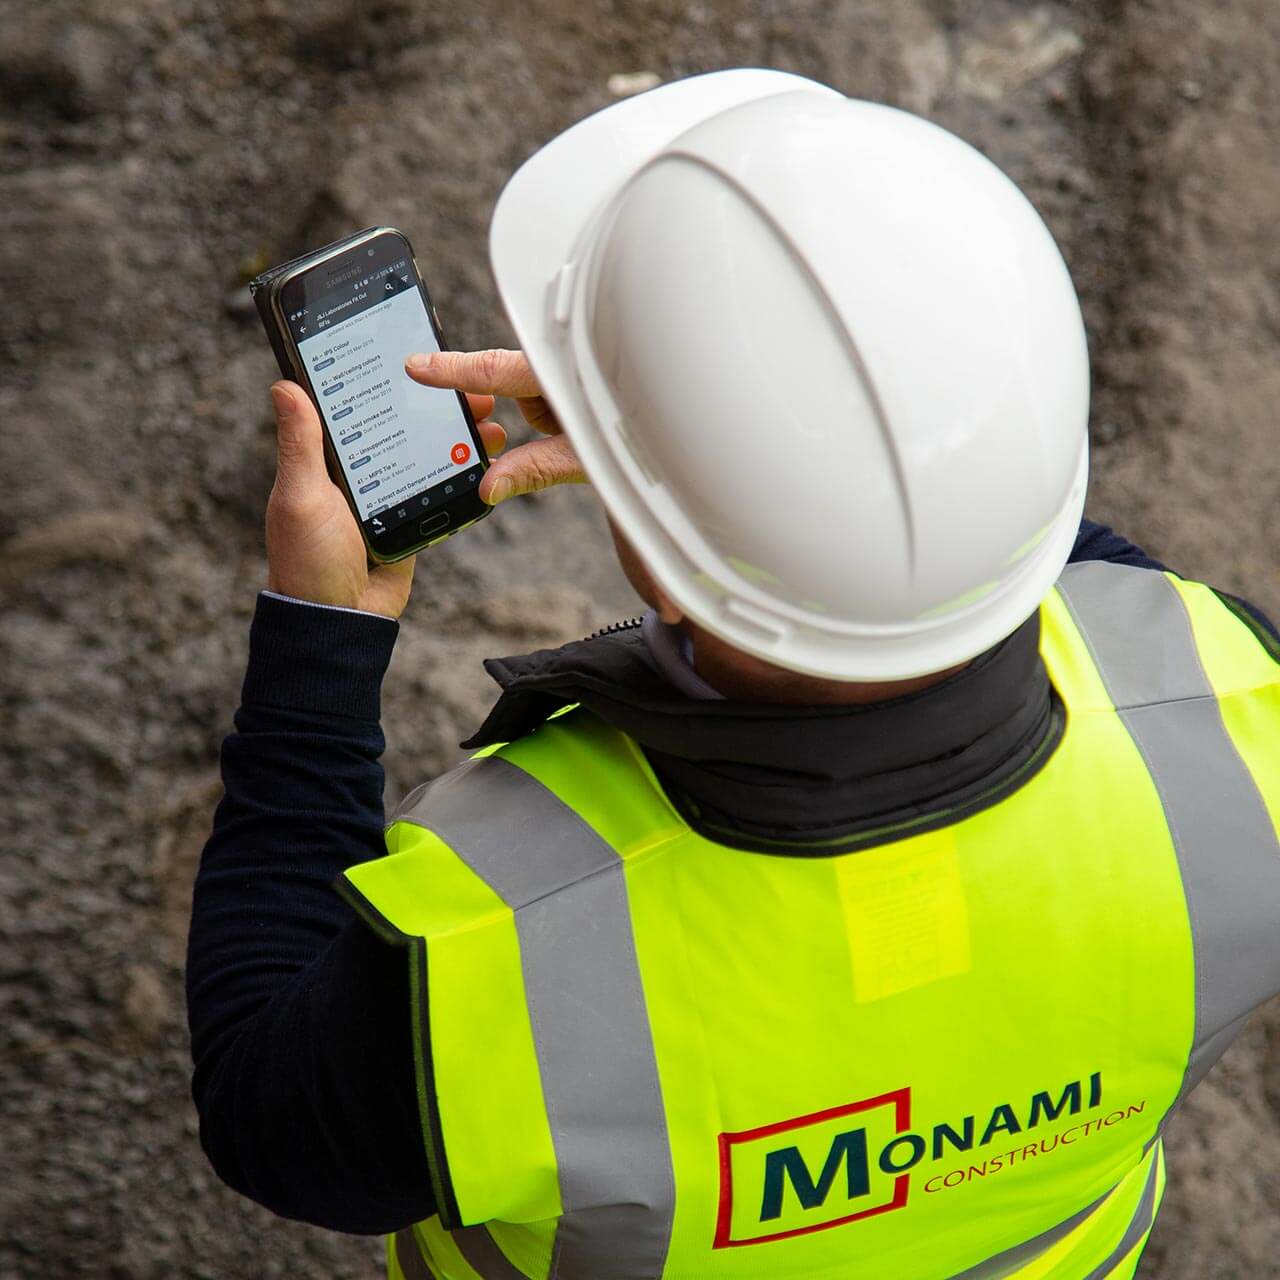 Construction Worker in PPE using Procore on a mobile device